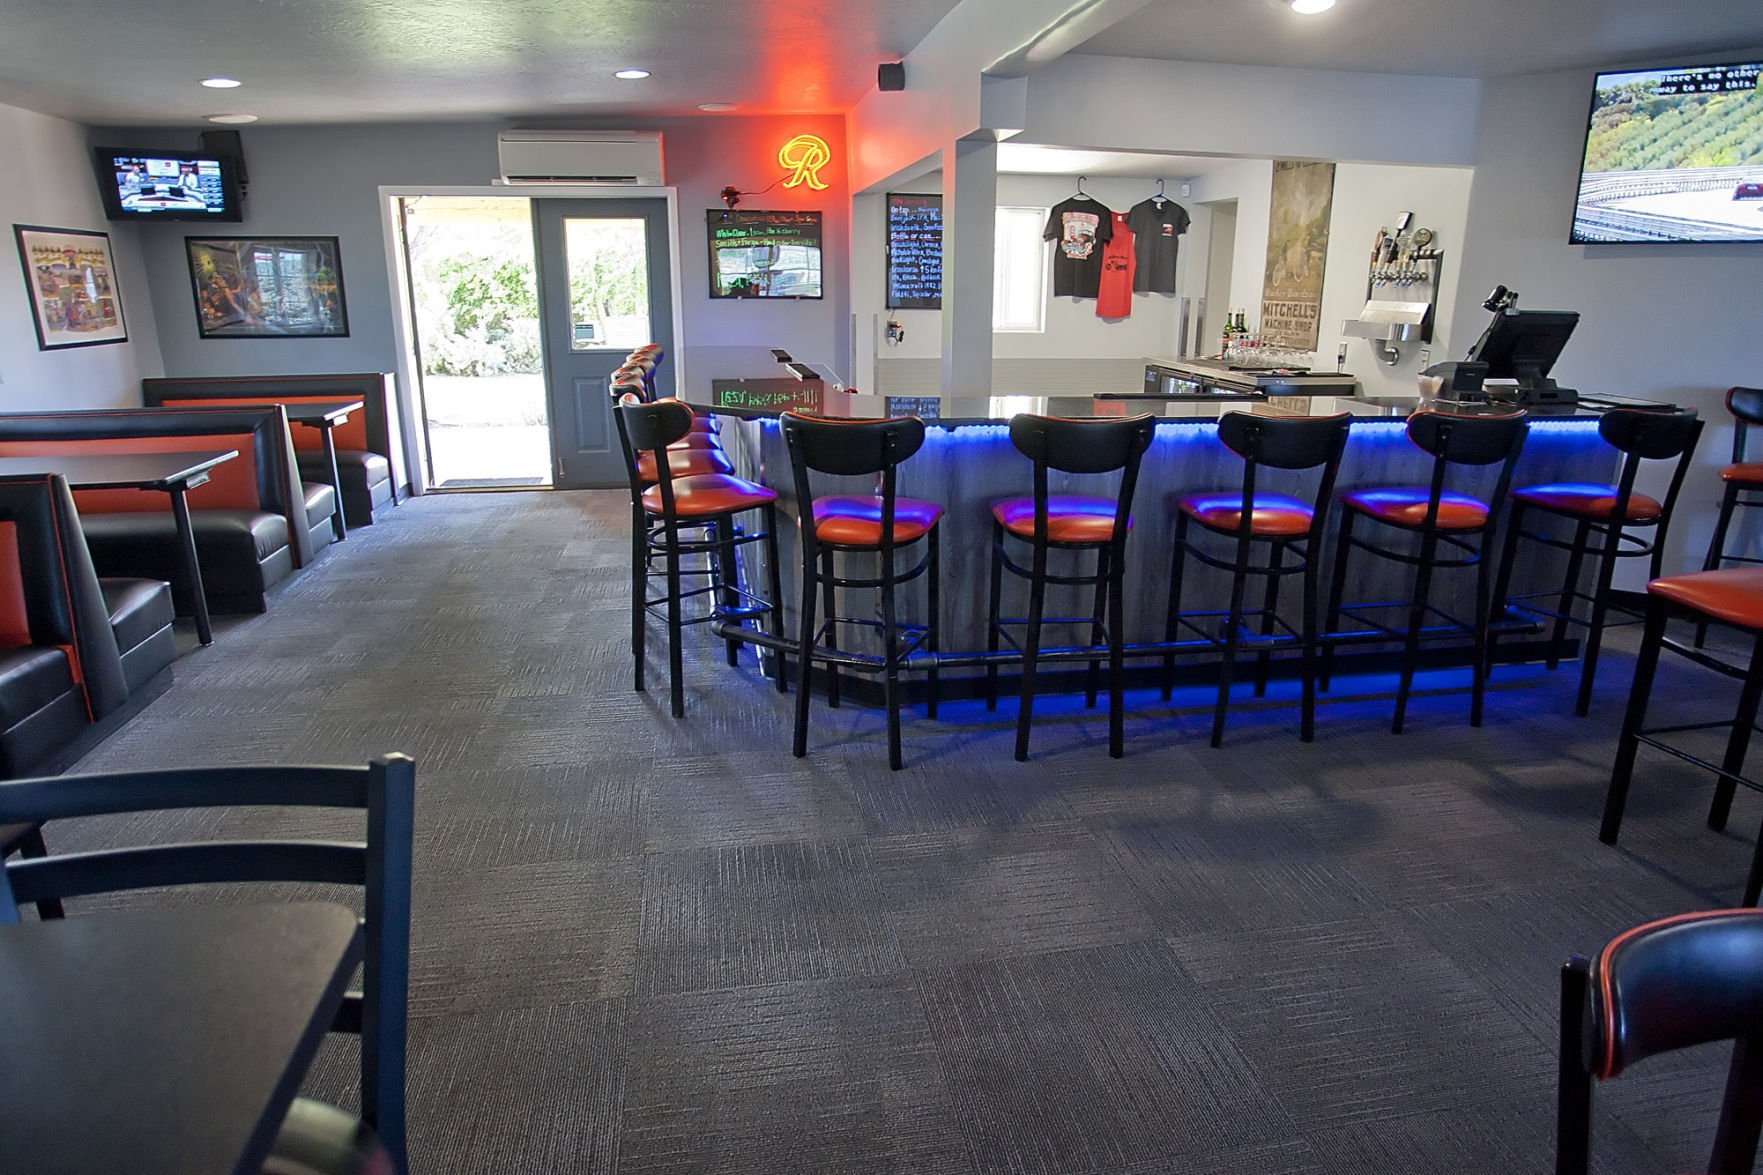 Red Horse Diner expands with bar